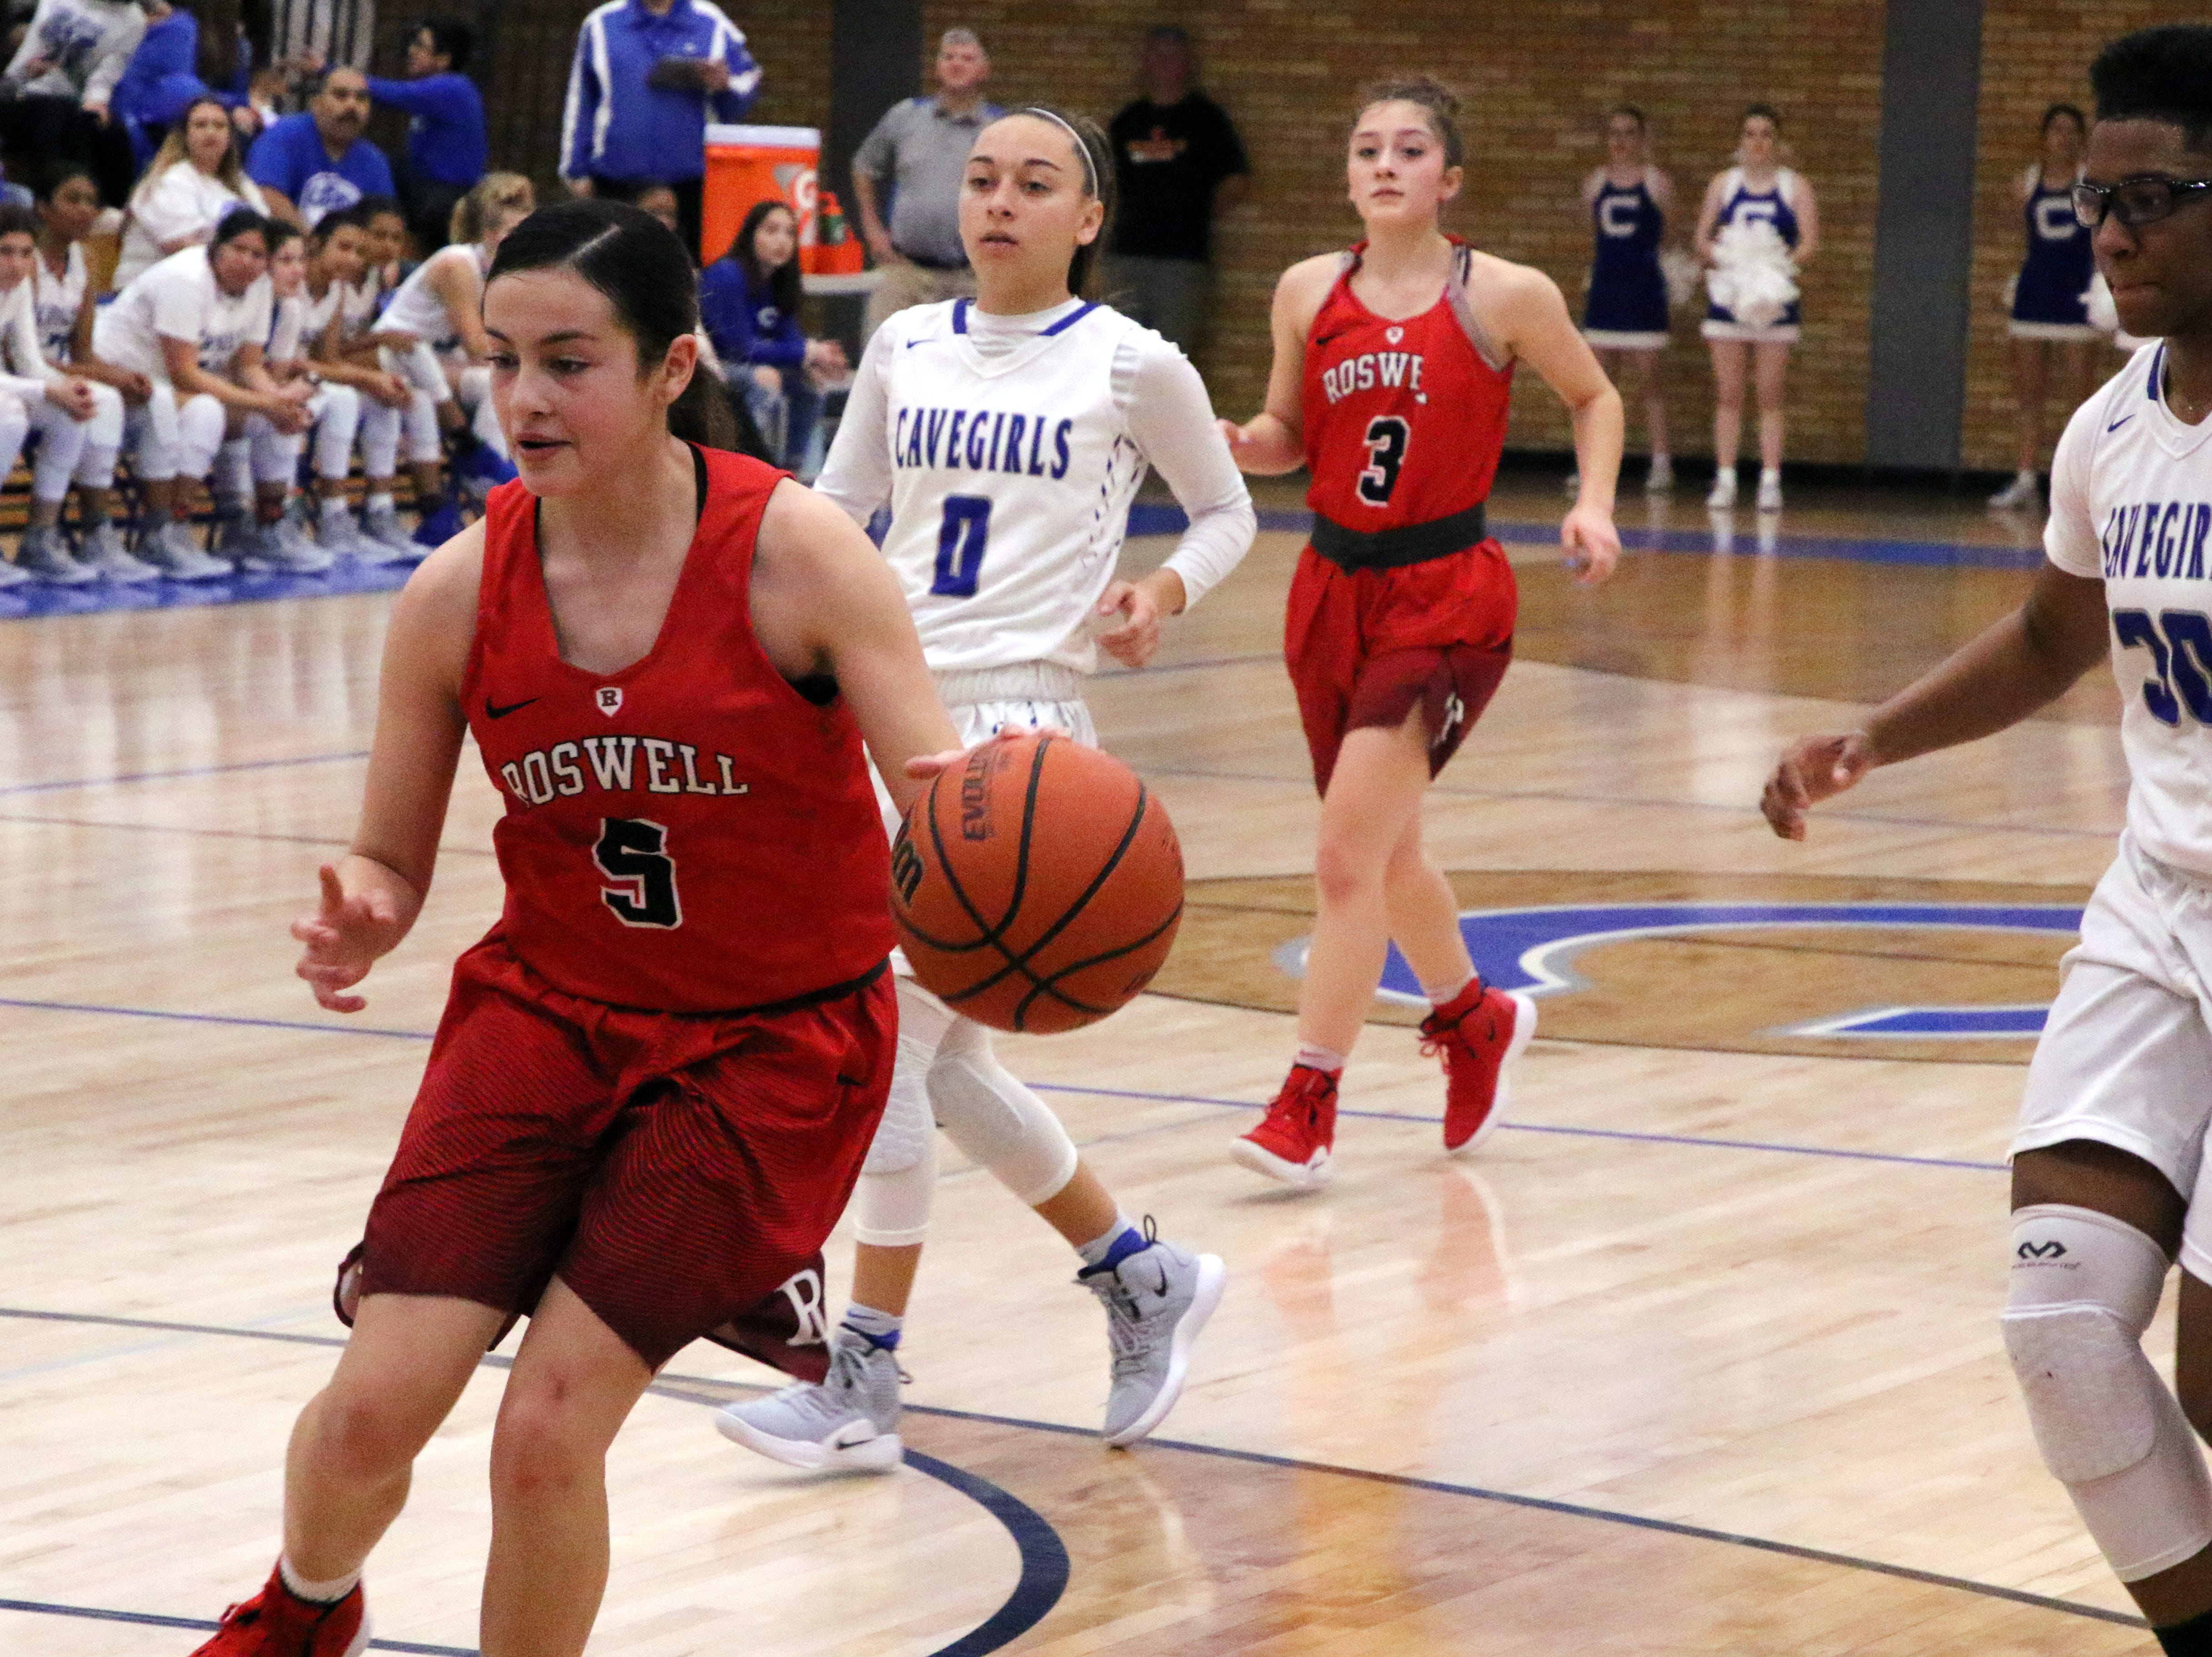 Roswell's Mercedes Velasco drives the lane in the third quarter of Friday's game against Carlsbad.